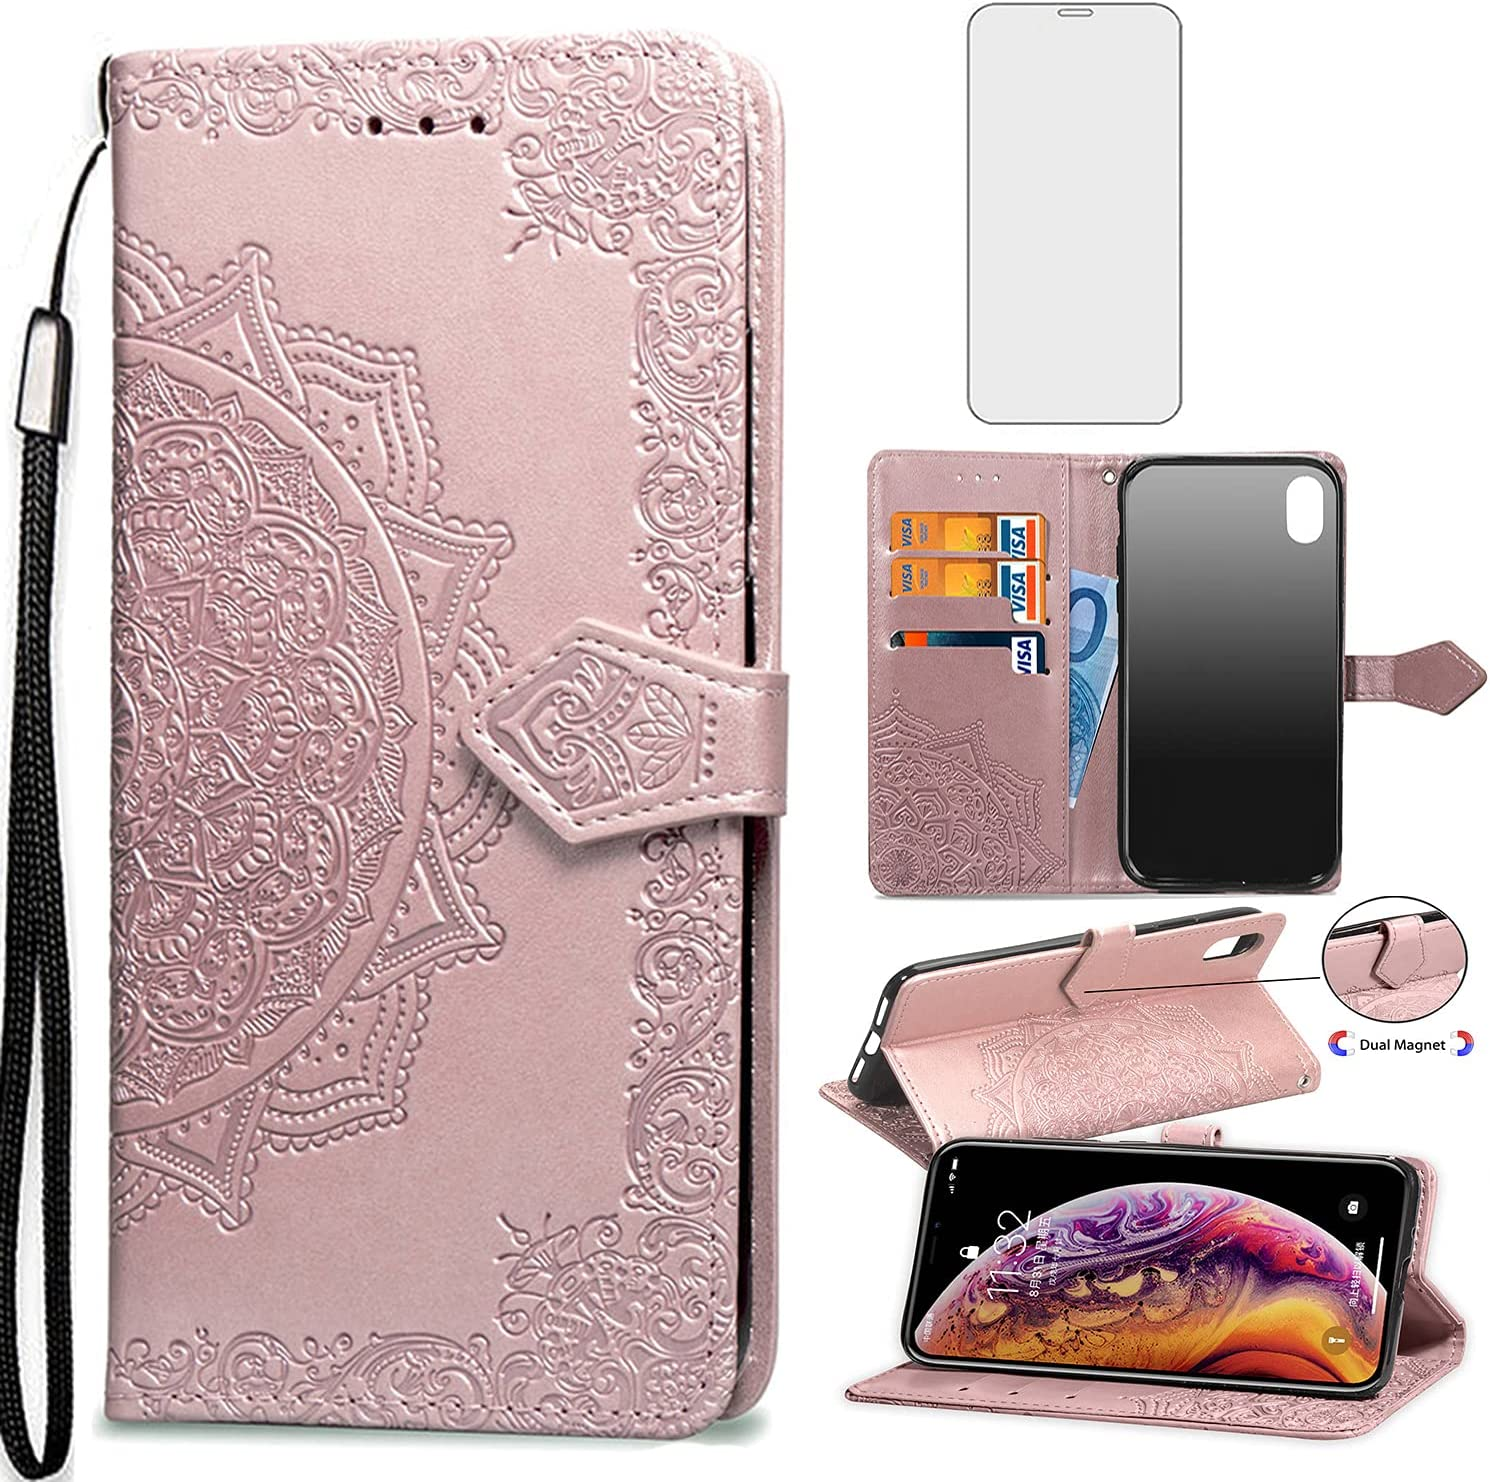 Asuwish Compatible with iPhone XR Wallet Case Tempered Glass Screen Protector Flip Cover Card Holder Cell Phone Cases for iPhoneXR iPhone10R i Phonex 10XR 10R 10 R RX CR iPhoneXRcases Women Rosegold